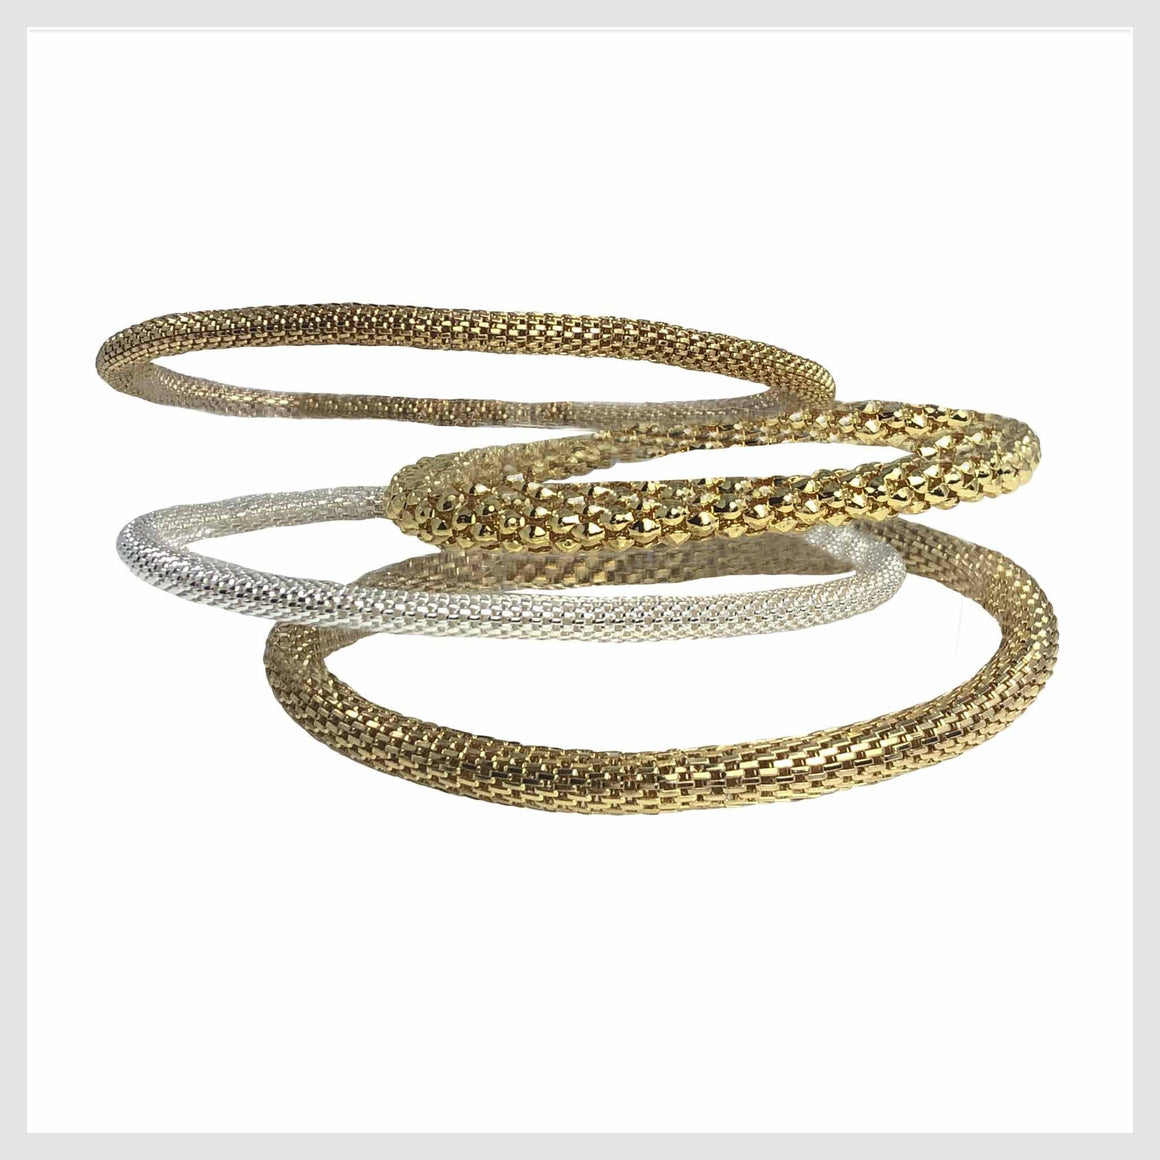 12K Gold and 925 Silver Plated Mesh Chain Stretch Bracelets Set of 4 (Two 4mm Two 6mm) - Beads and Dangles